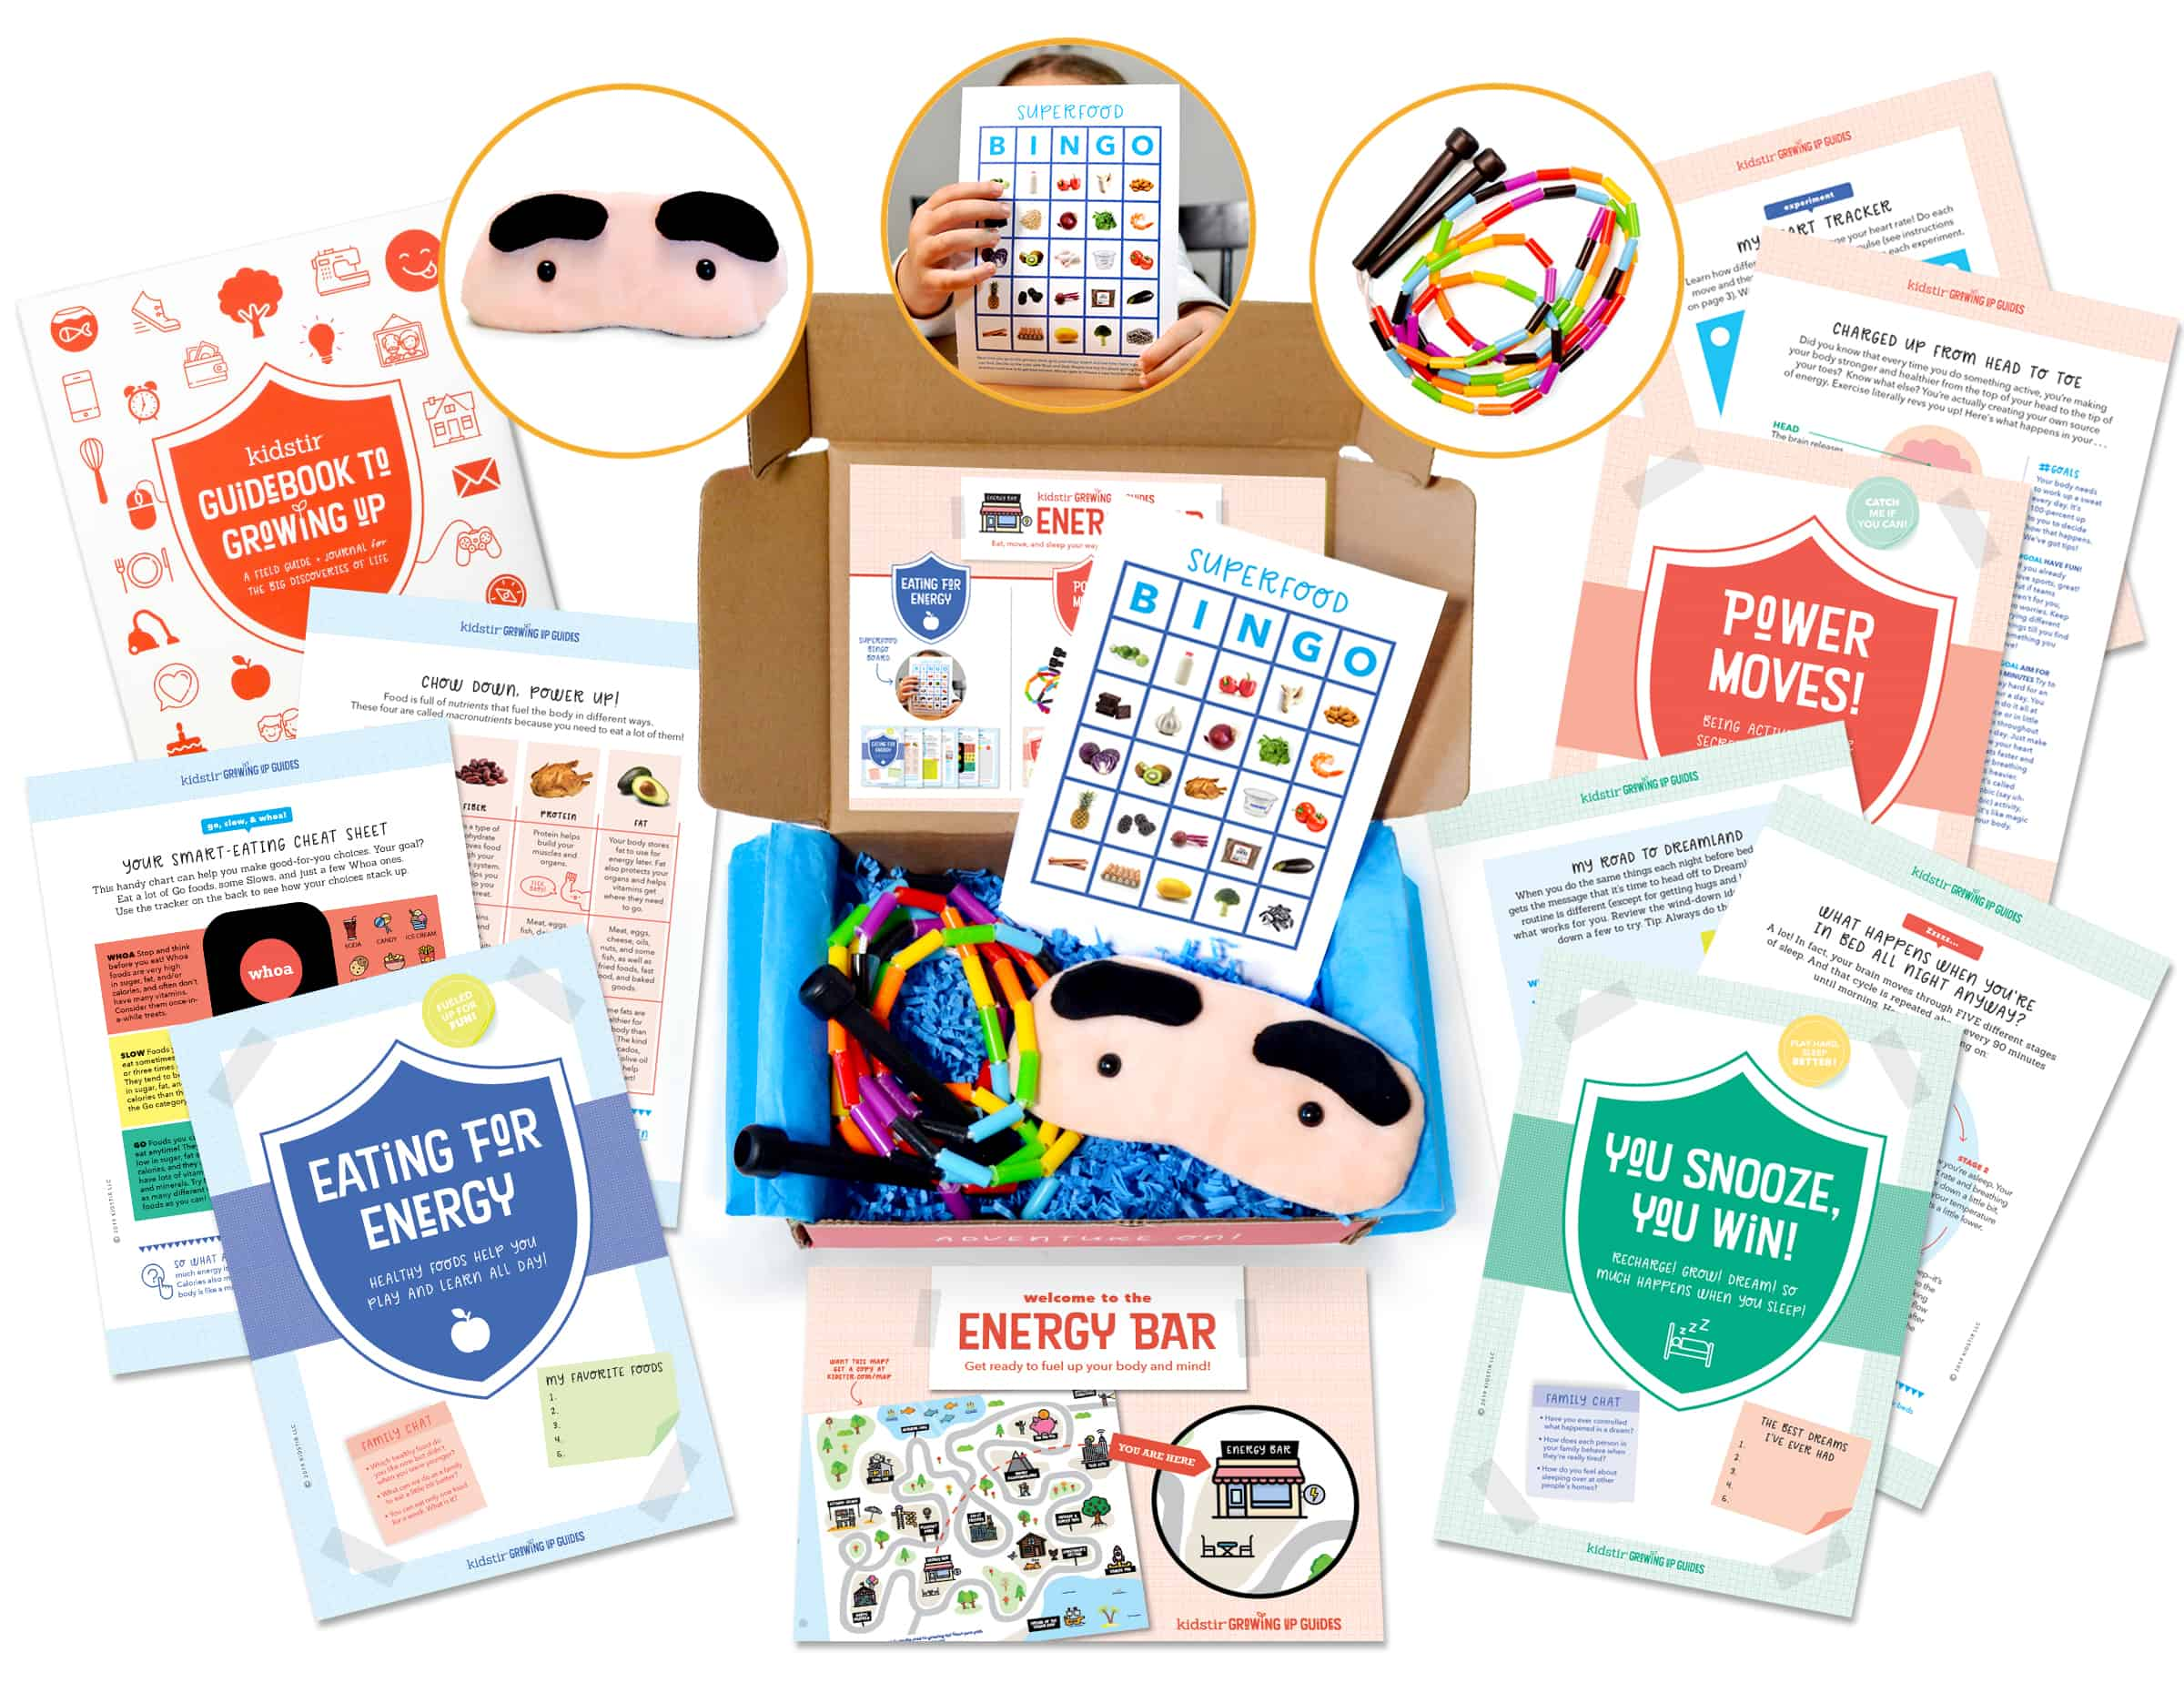 Kidstir Growing Up Guides Cyber Monday 75% Off First Month Coupon – Save $10!